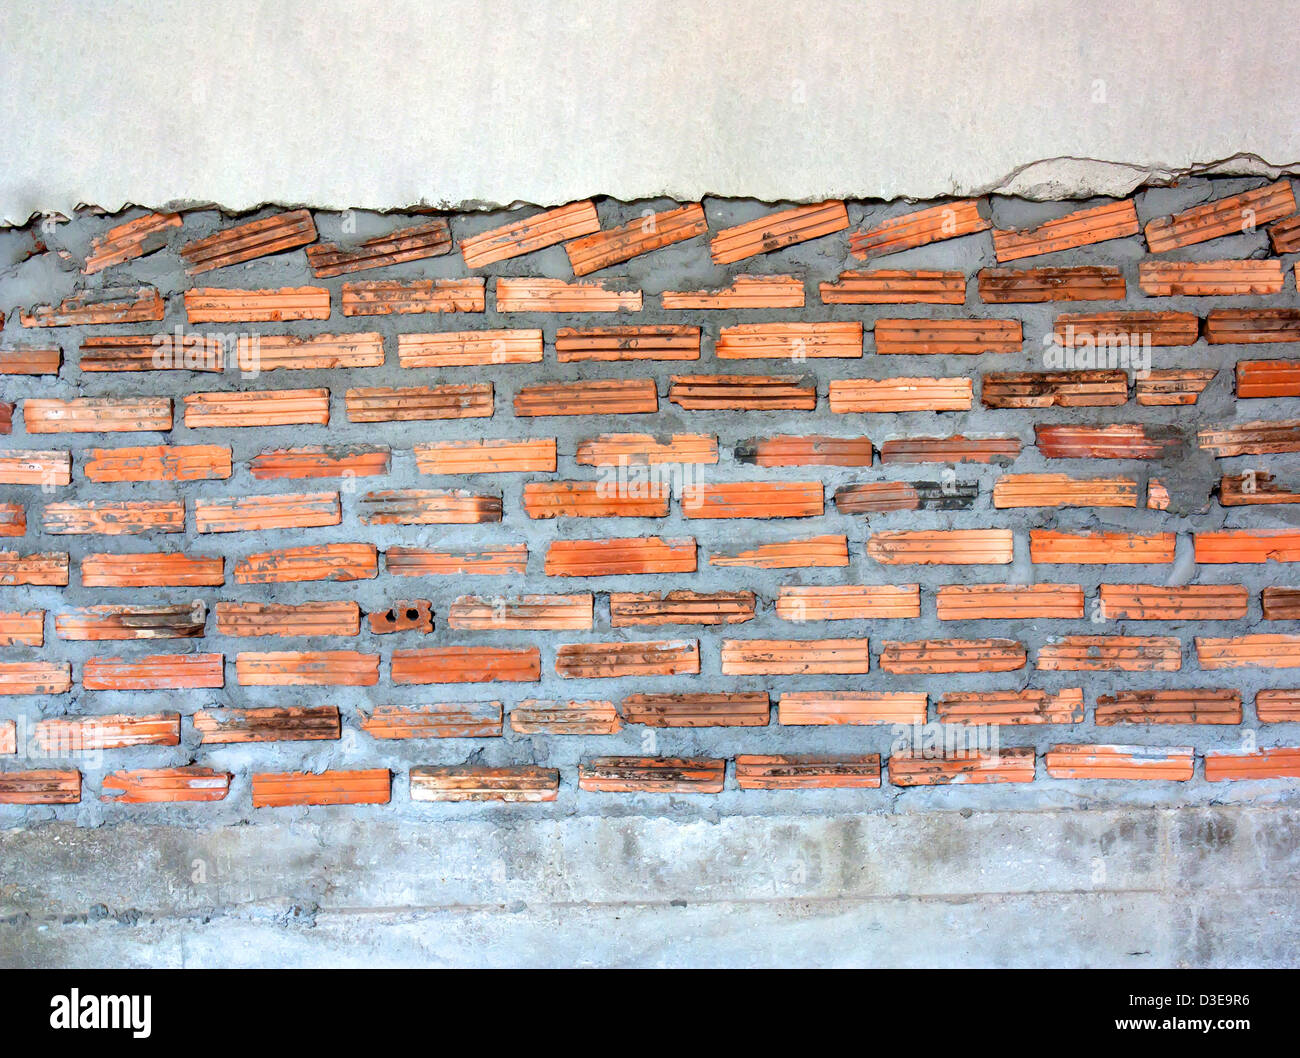 Background of grunge red brick wall. Outdated. - Stock Image